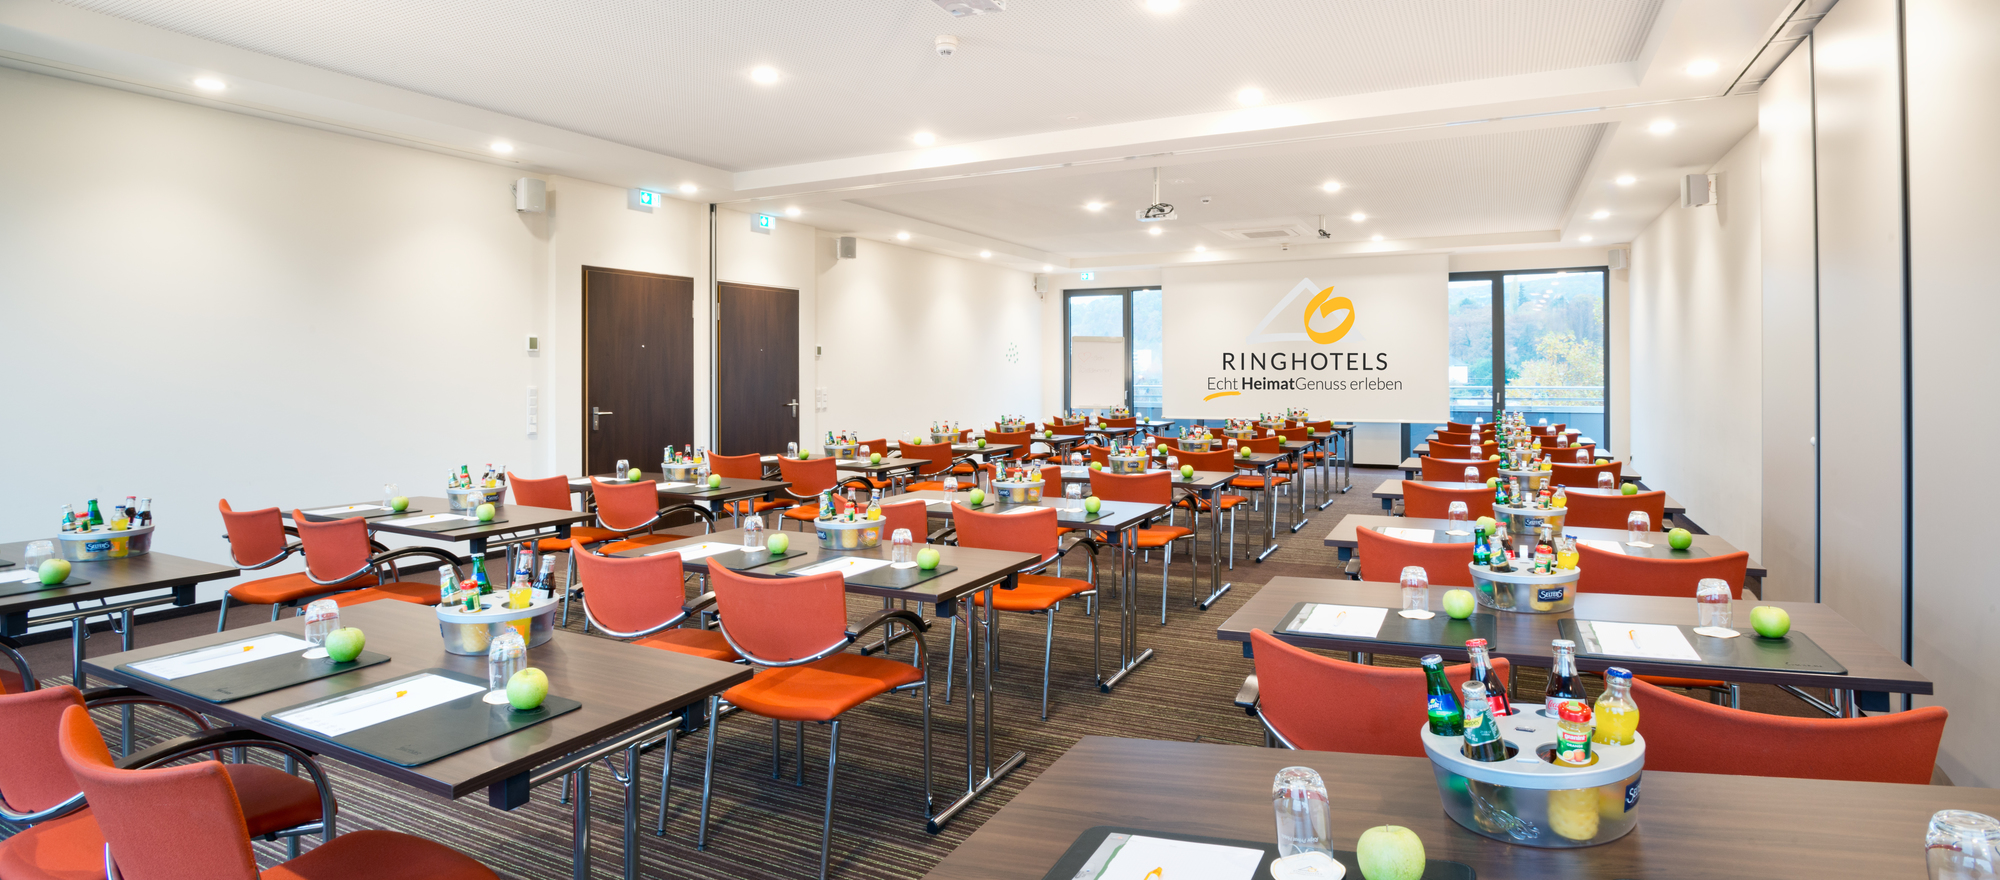 Meeting room in the Ringhotel Zweibruecker Hof in Herdecke, 4-stars hotel in the Ruhrgebiet region